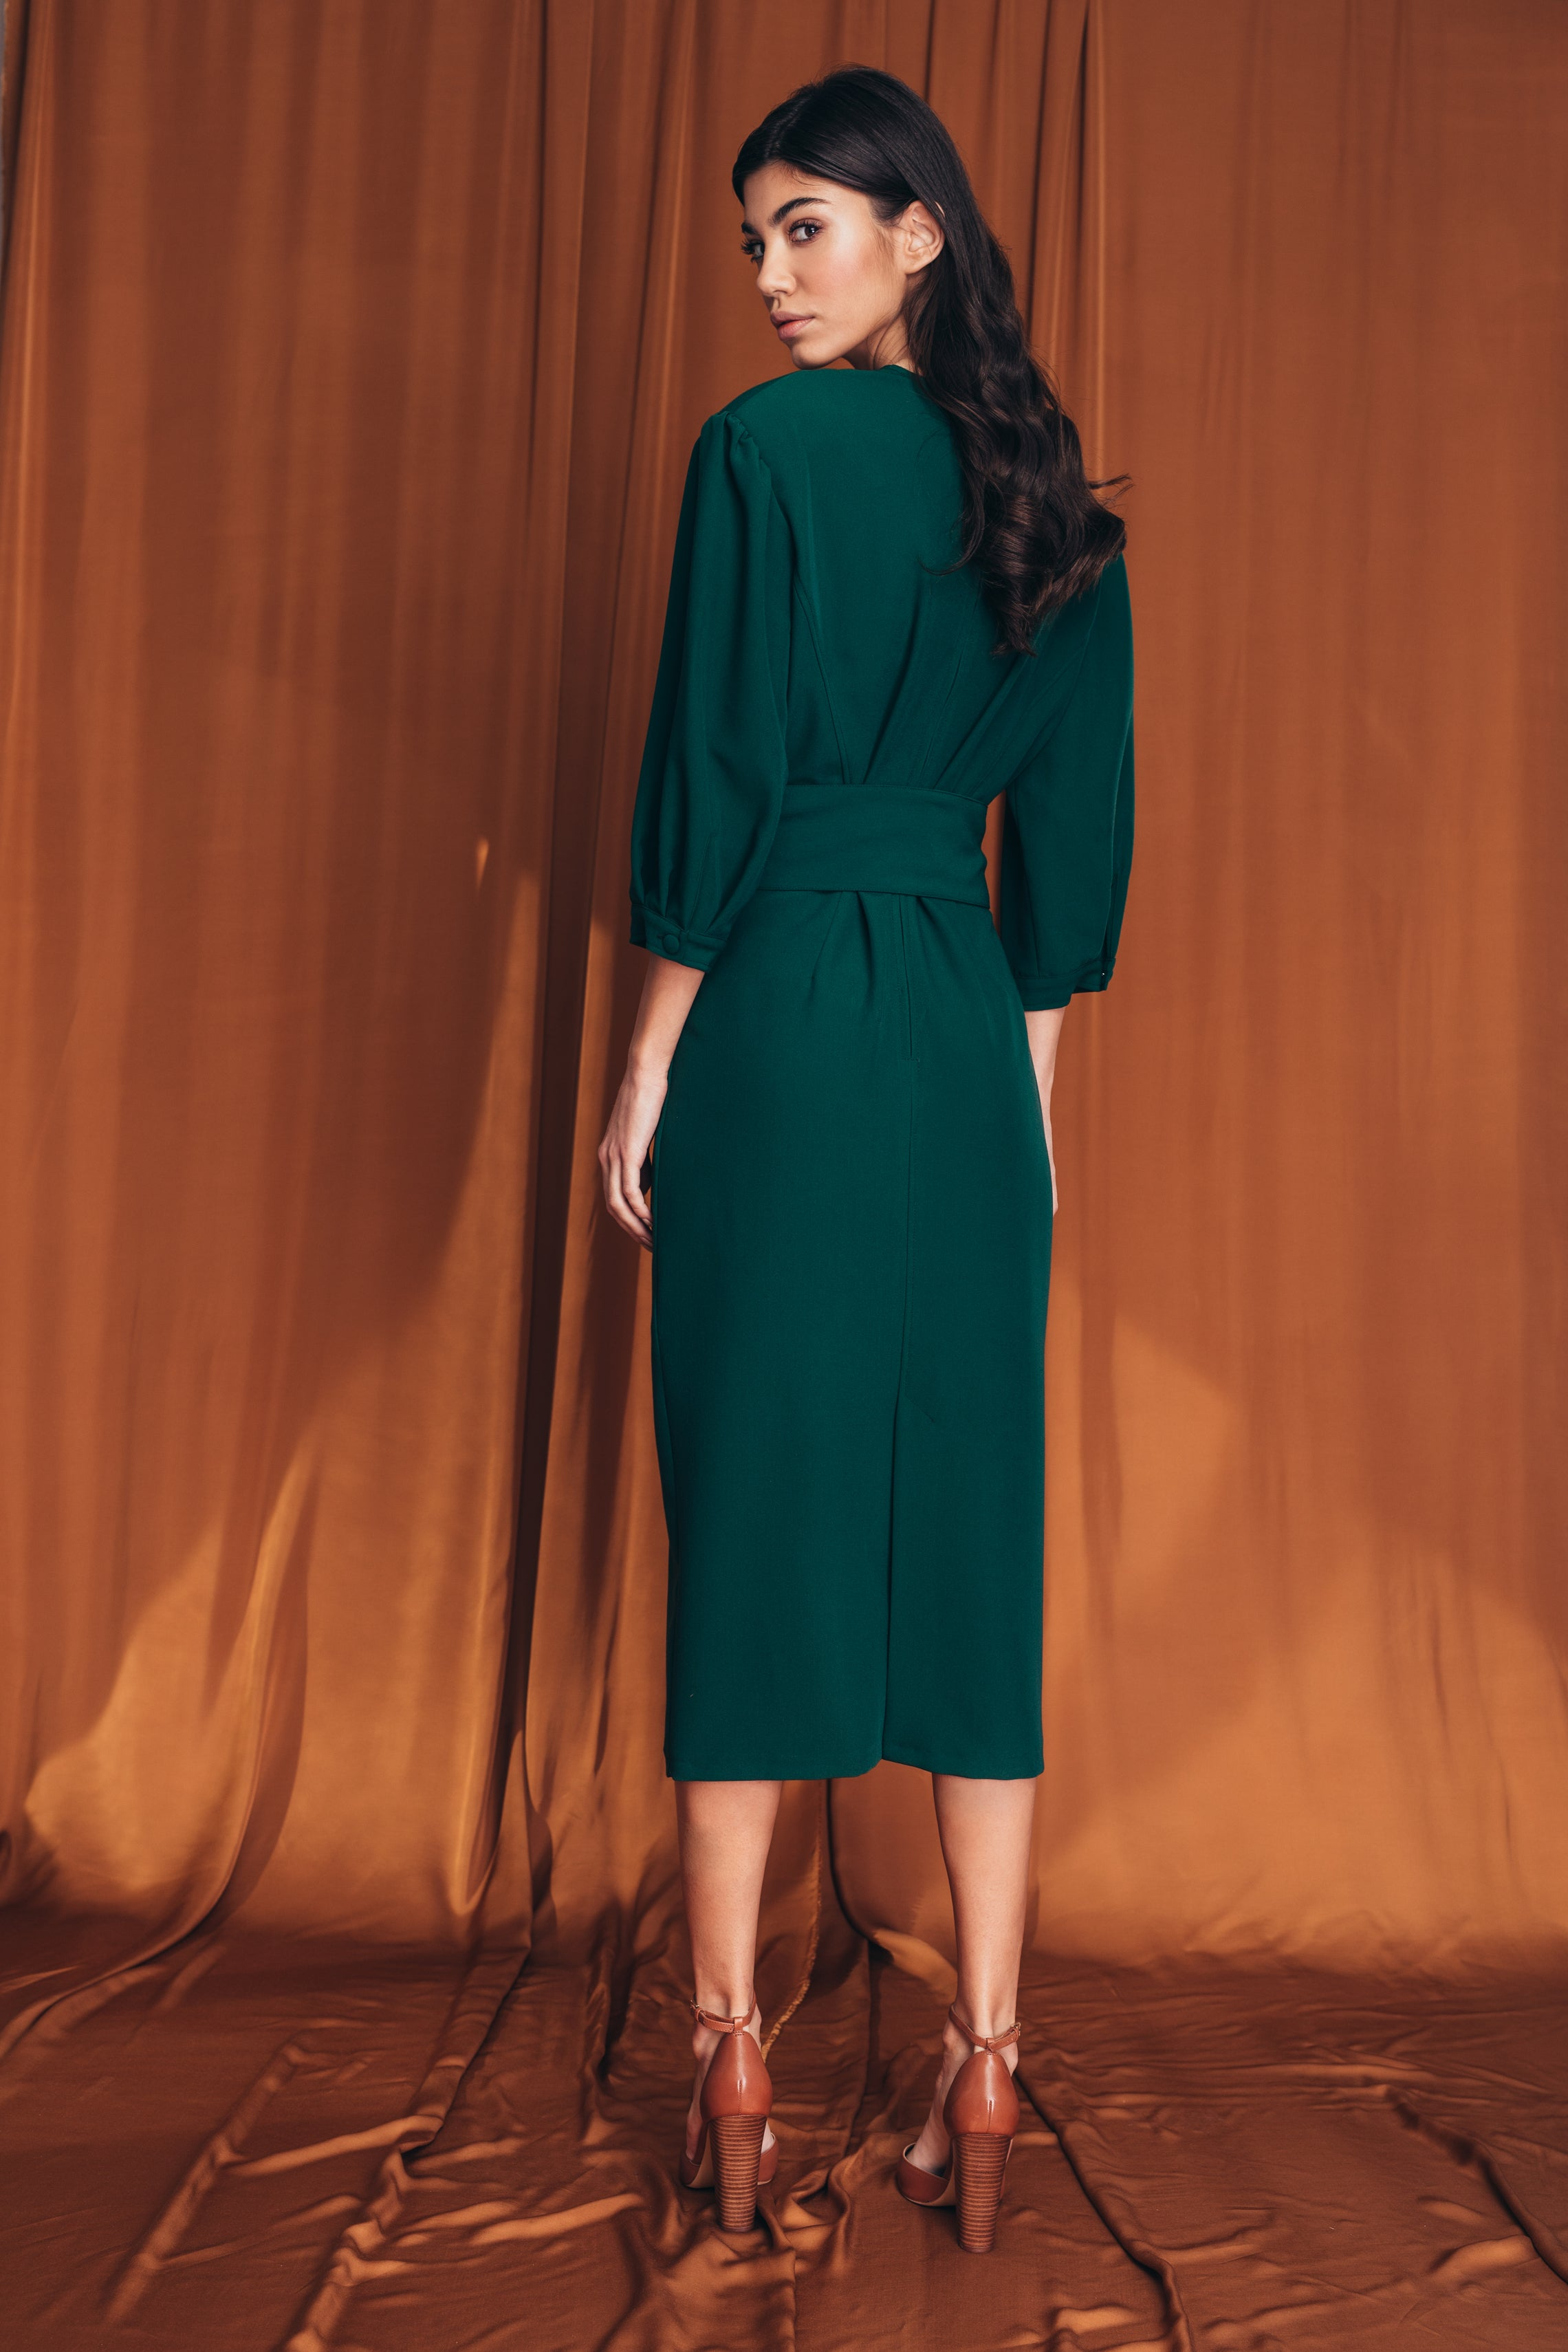 Draped emerald green midi dress